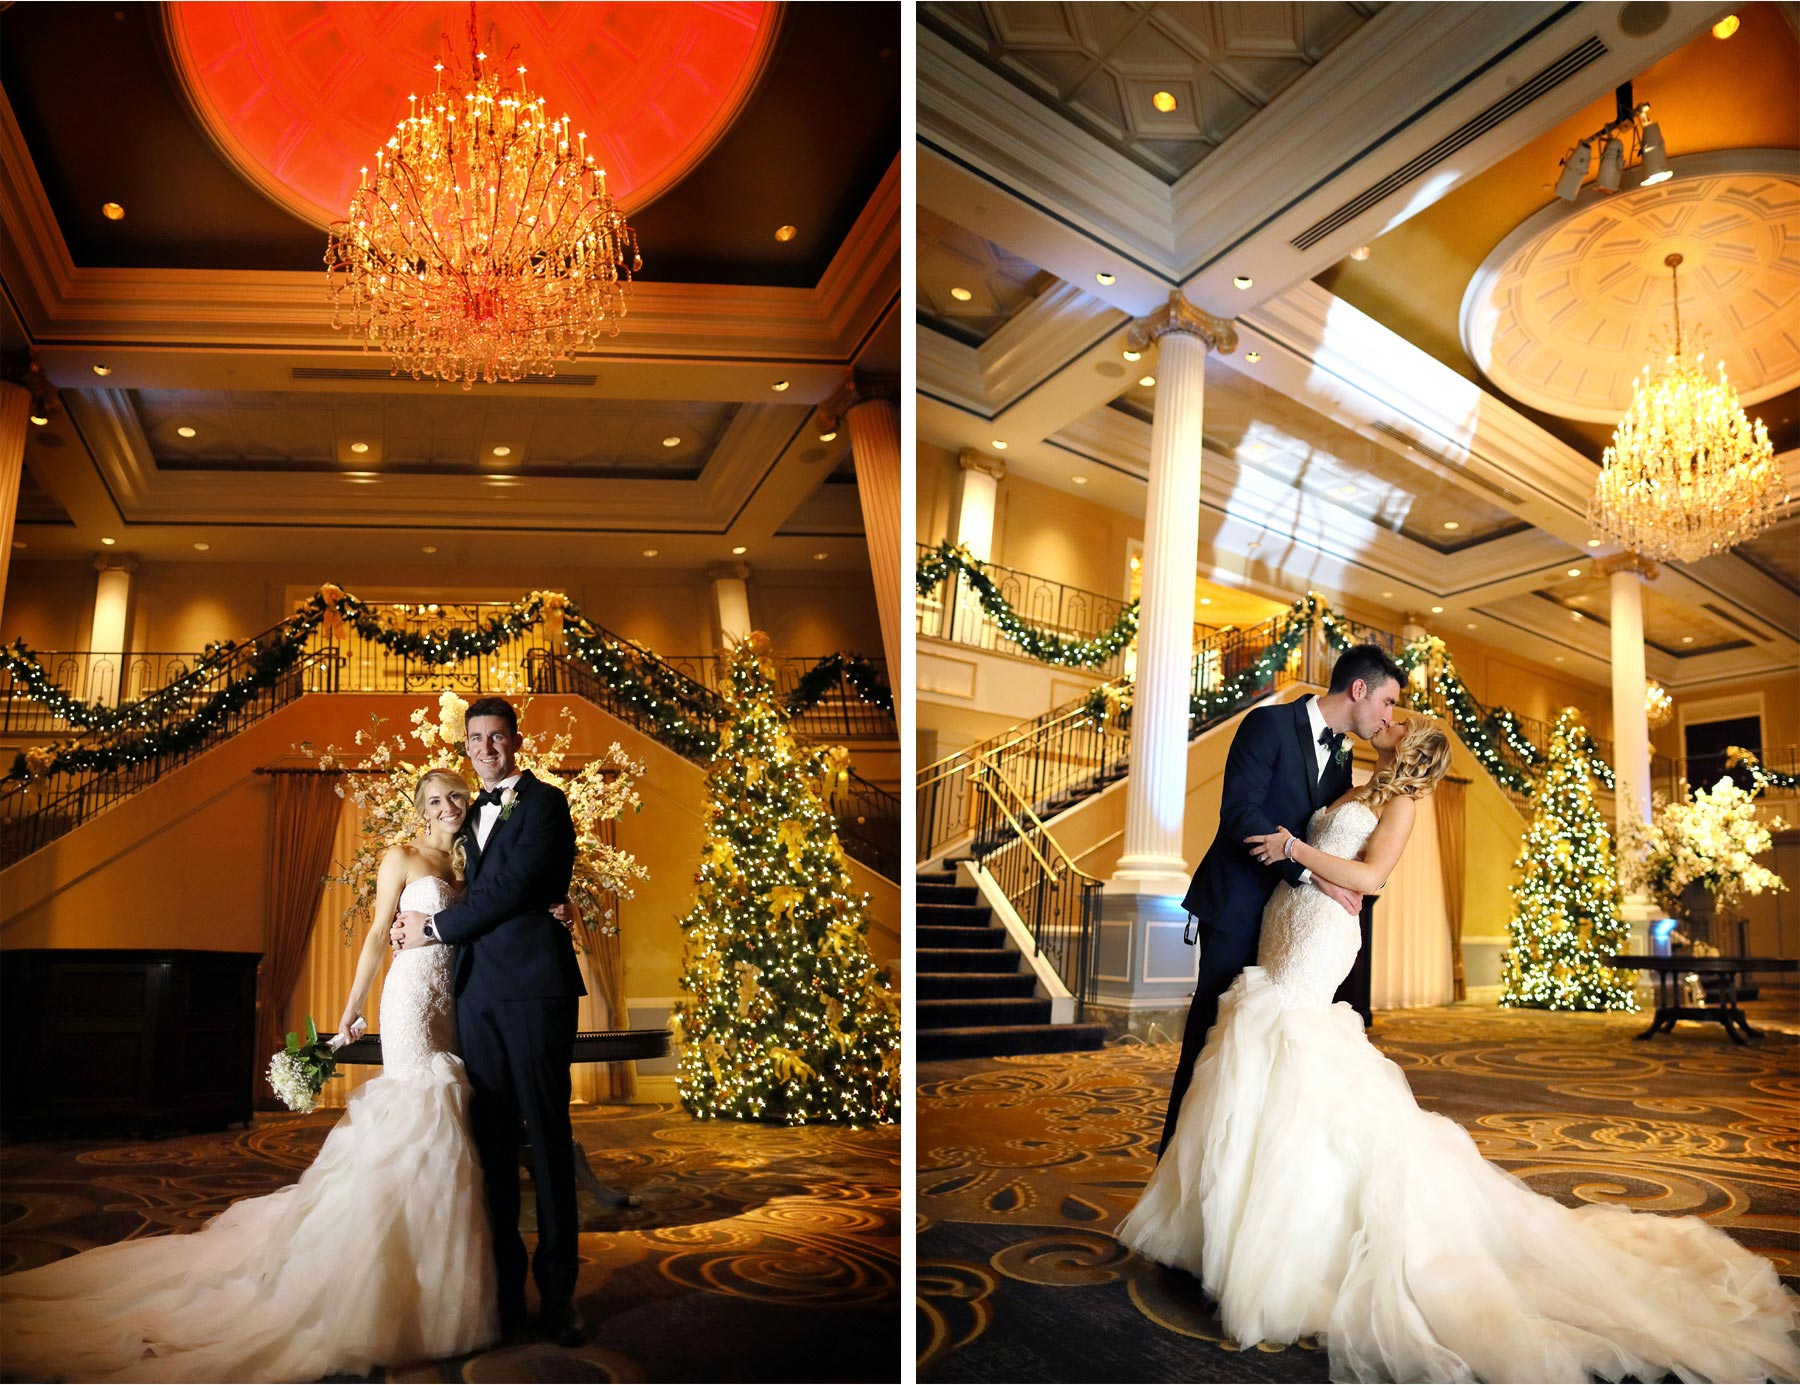 19-Somerset-New-Jersey-Wedding-Photographer-by-Andrew-Vick-Photography-Winter-Palace-At-Somerset-Park-Reception-Bride-Groom-Kiss-Christmas-Tree-Decorations-Alexia-and-Justin.jpg